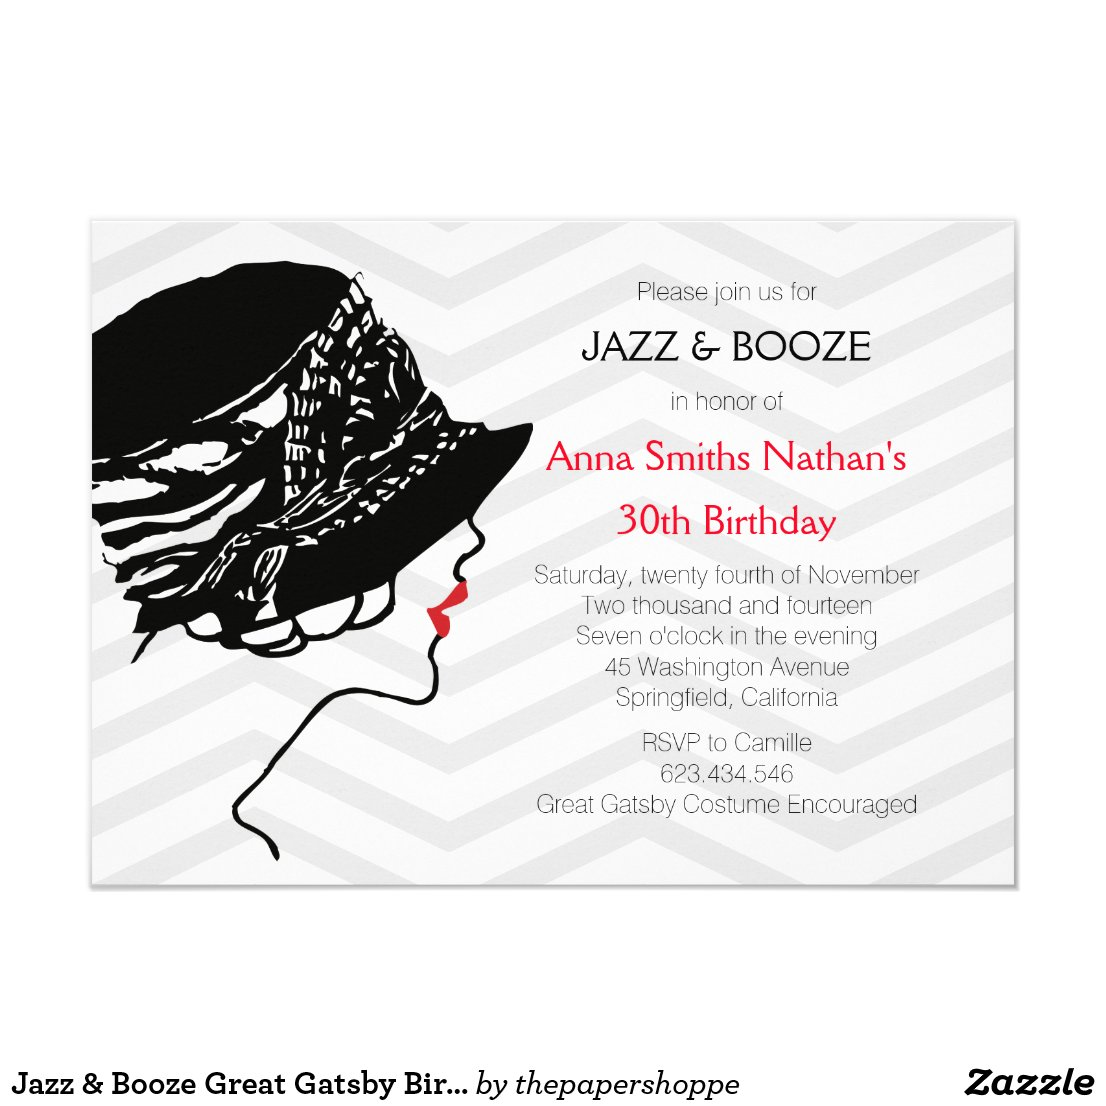 Jazz & Booze Great Gatsby Birthday Invitation